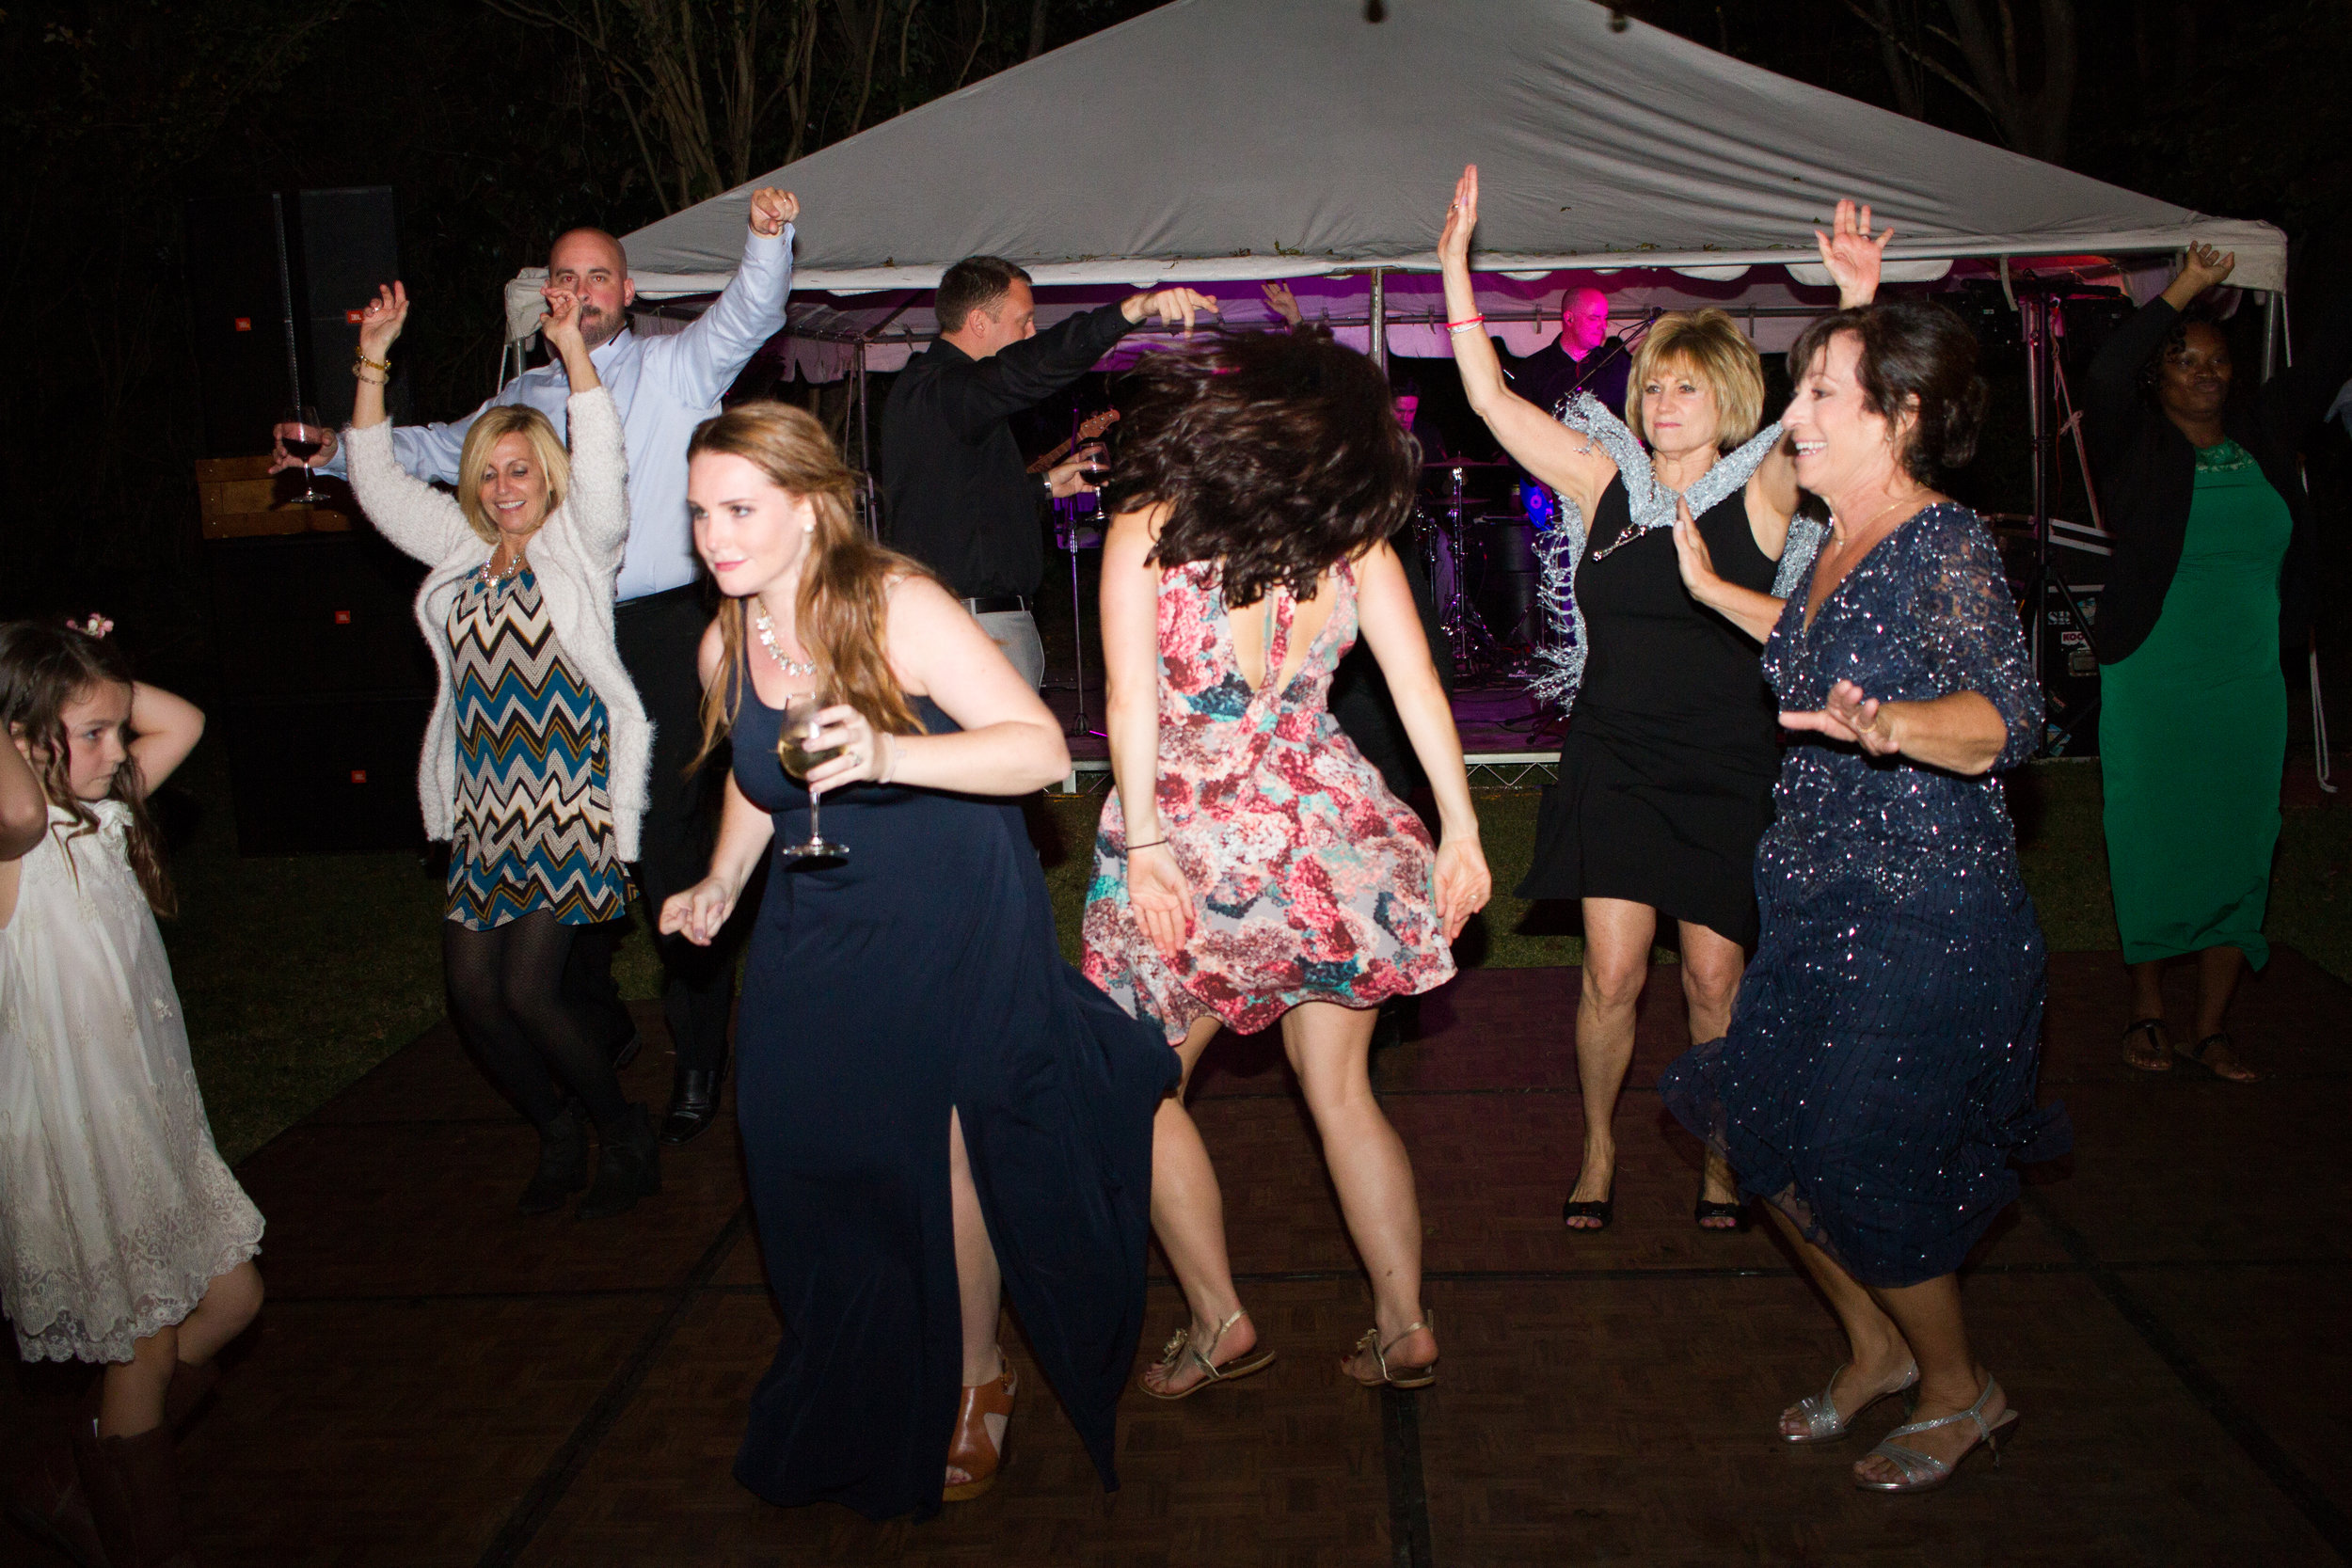 Jacqueline and Shawn Wedding (543 of 597).jpg